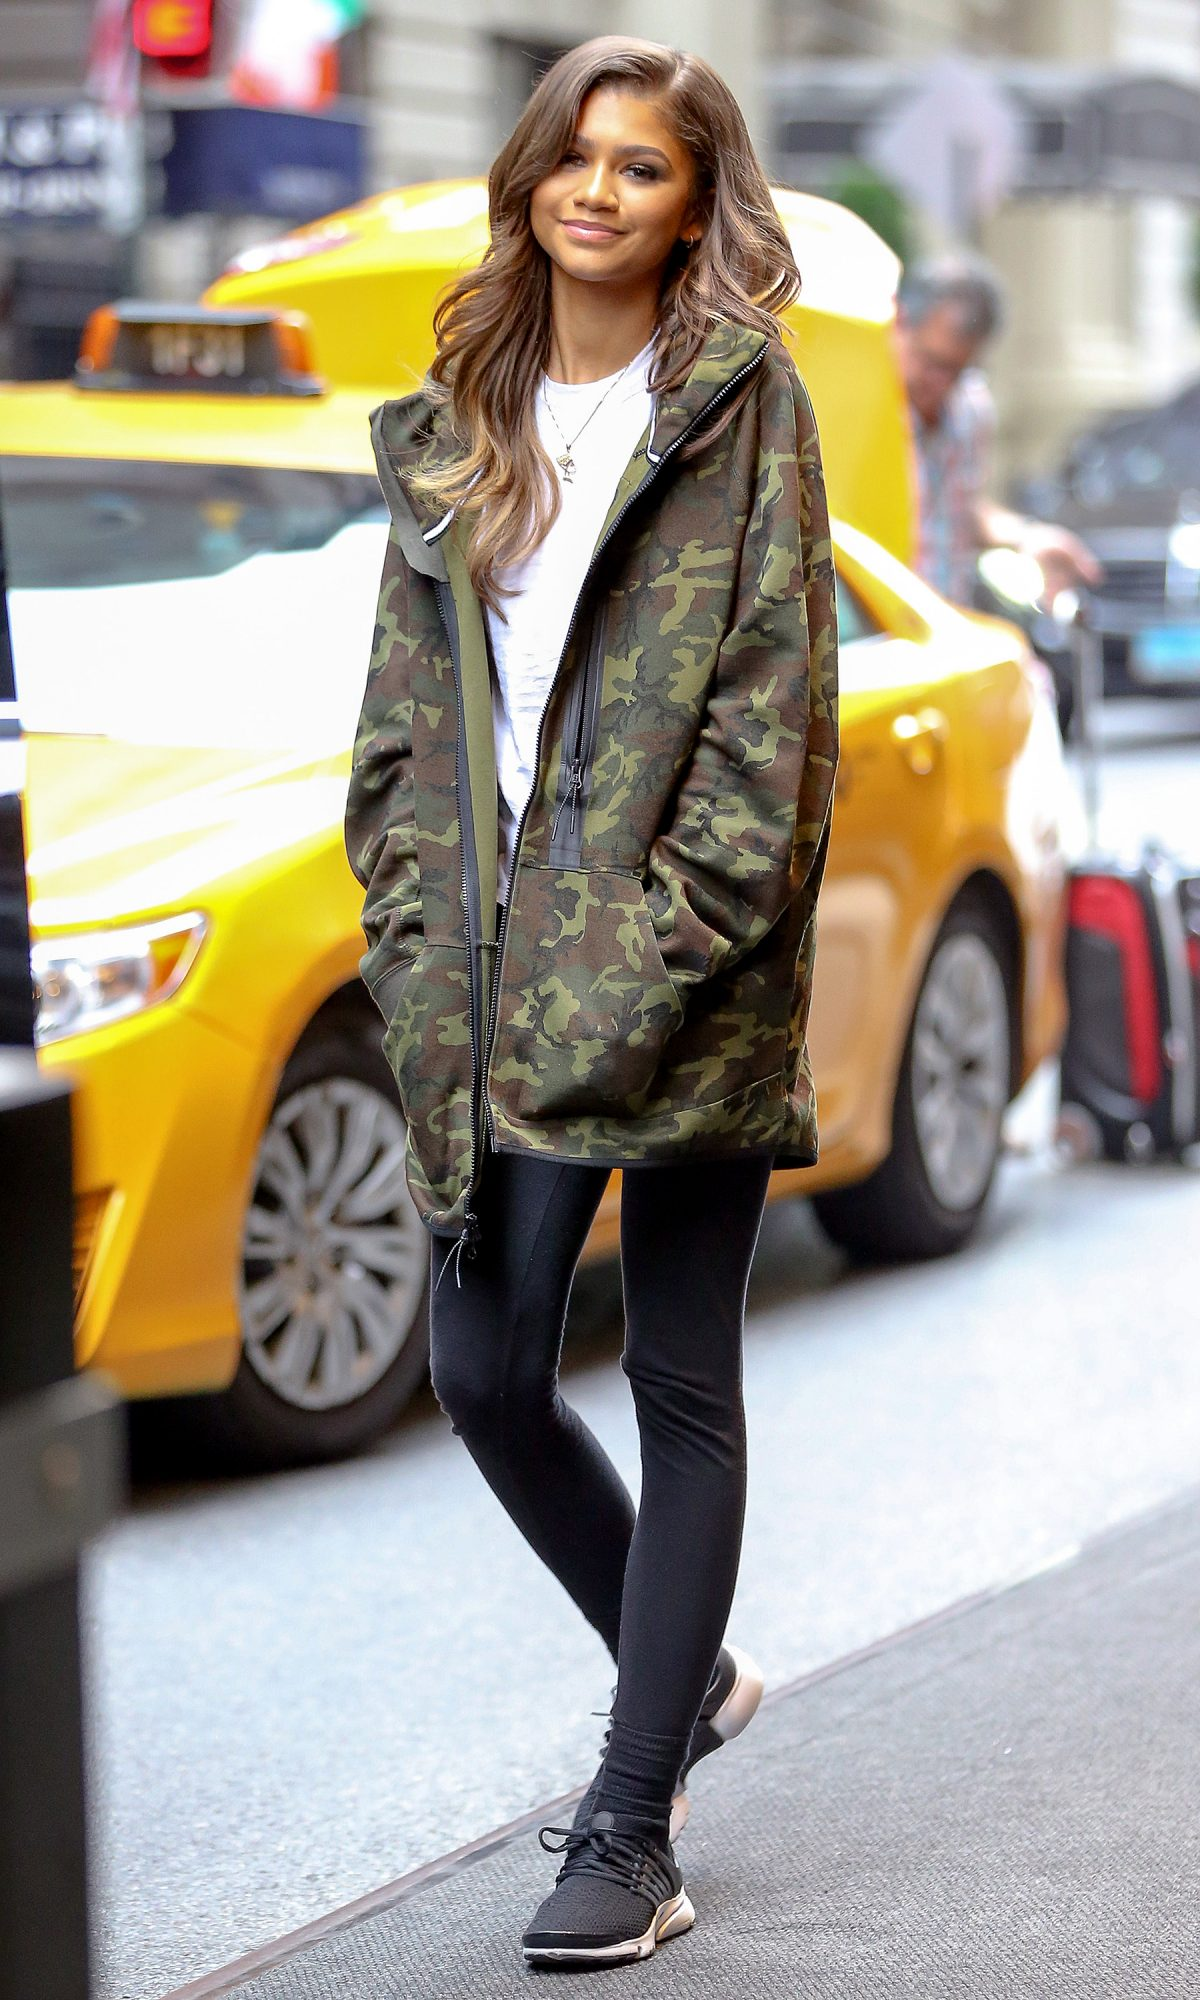 *EXCLUSIVE* Zendaya makes casual look sophisticated in camo and curls